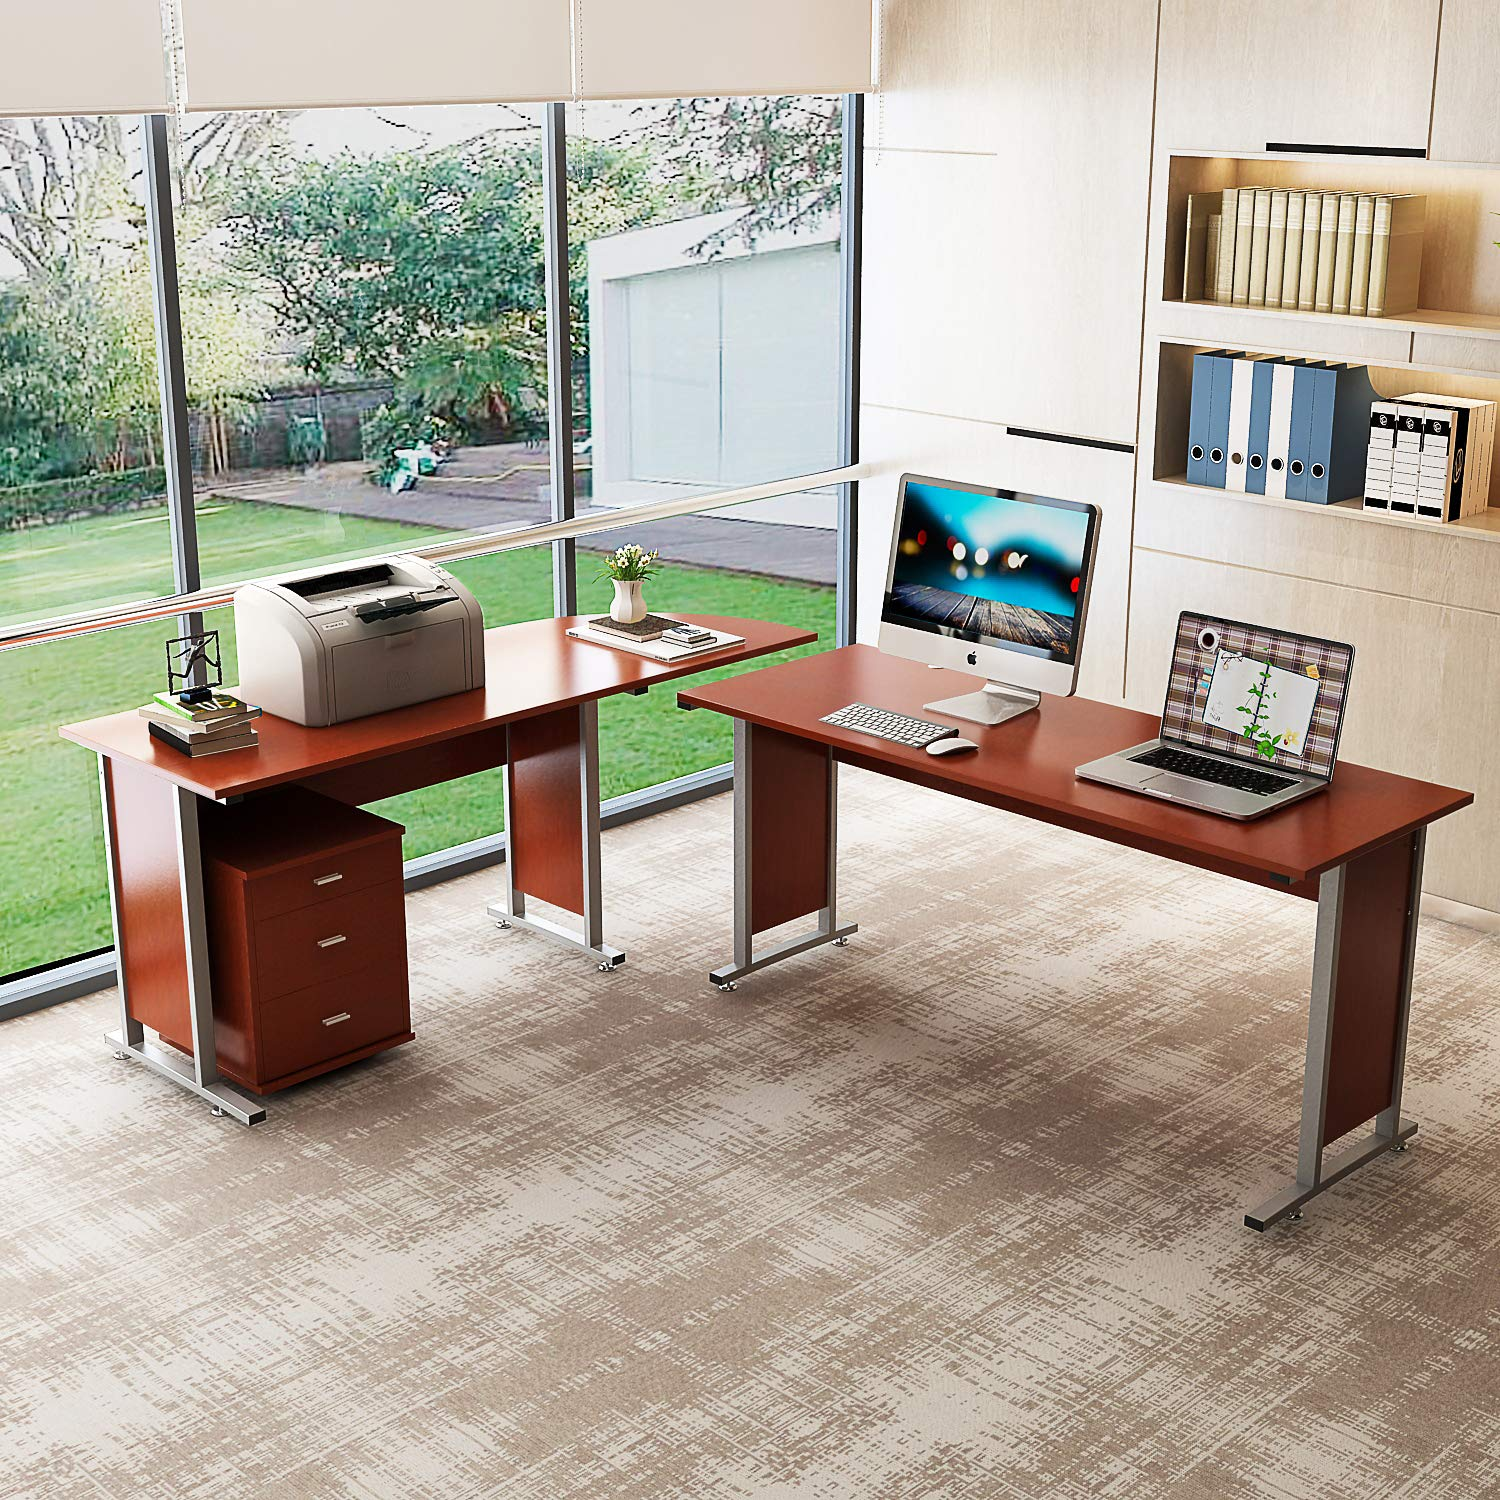 Details about Large Reversible Modern L-Shaped Desk with Cabinet Double  Corner Computer Desk